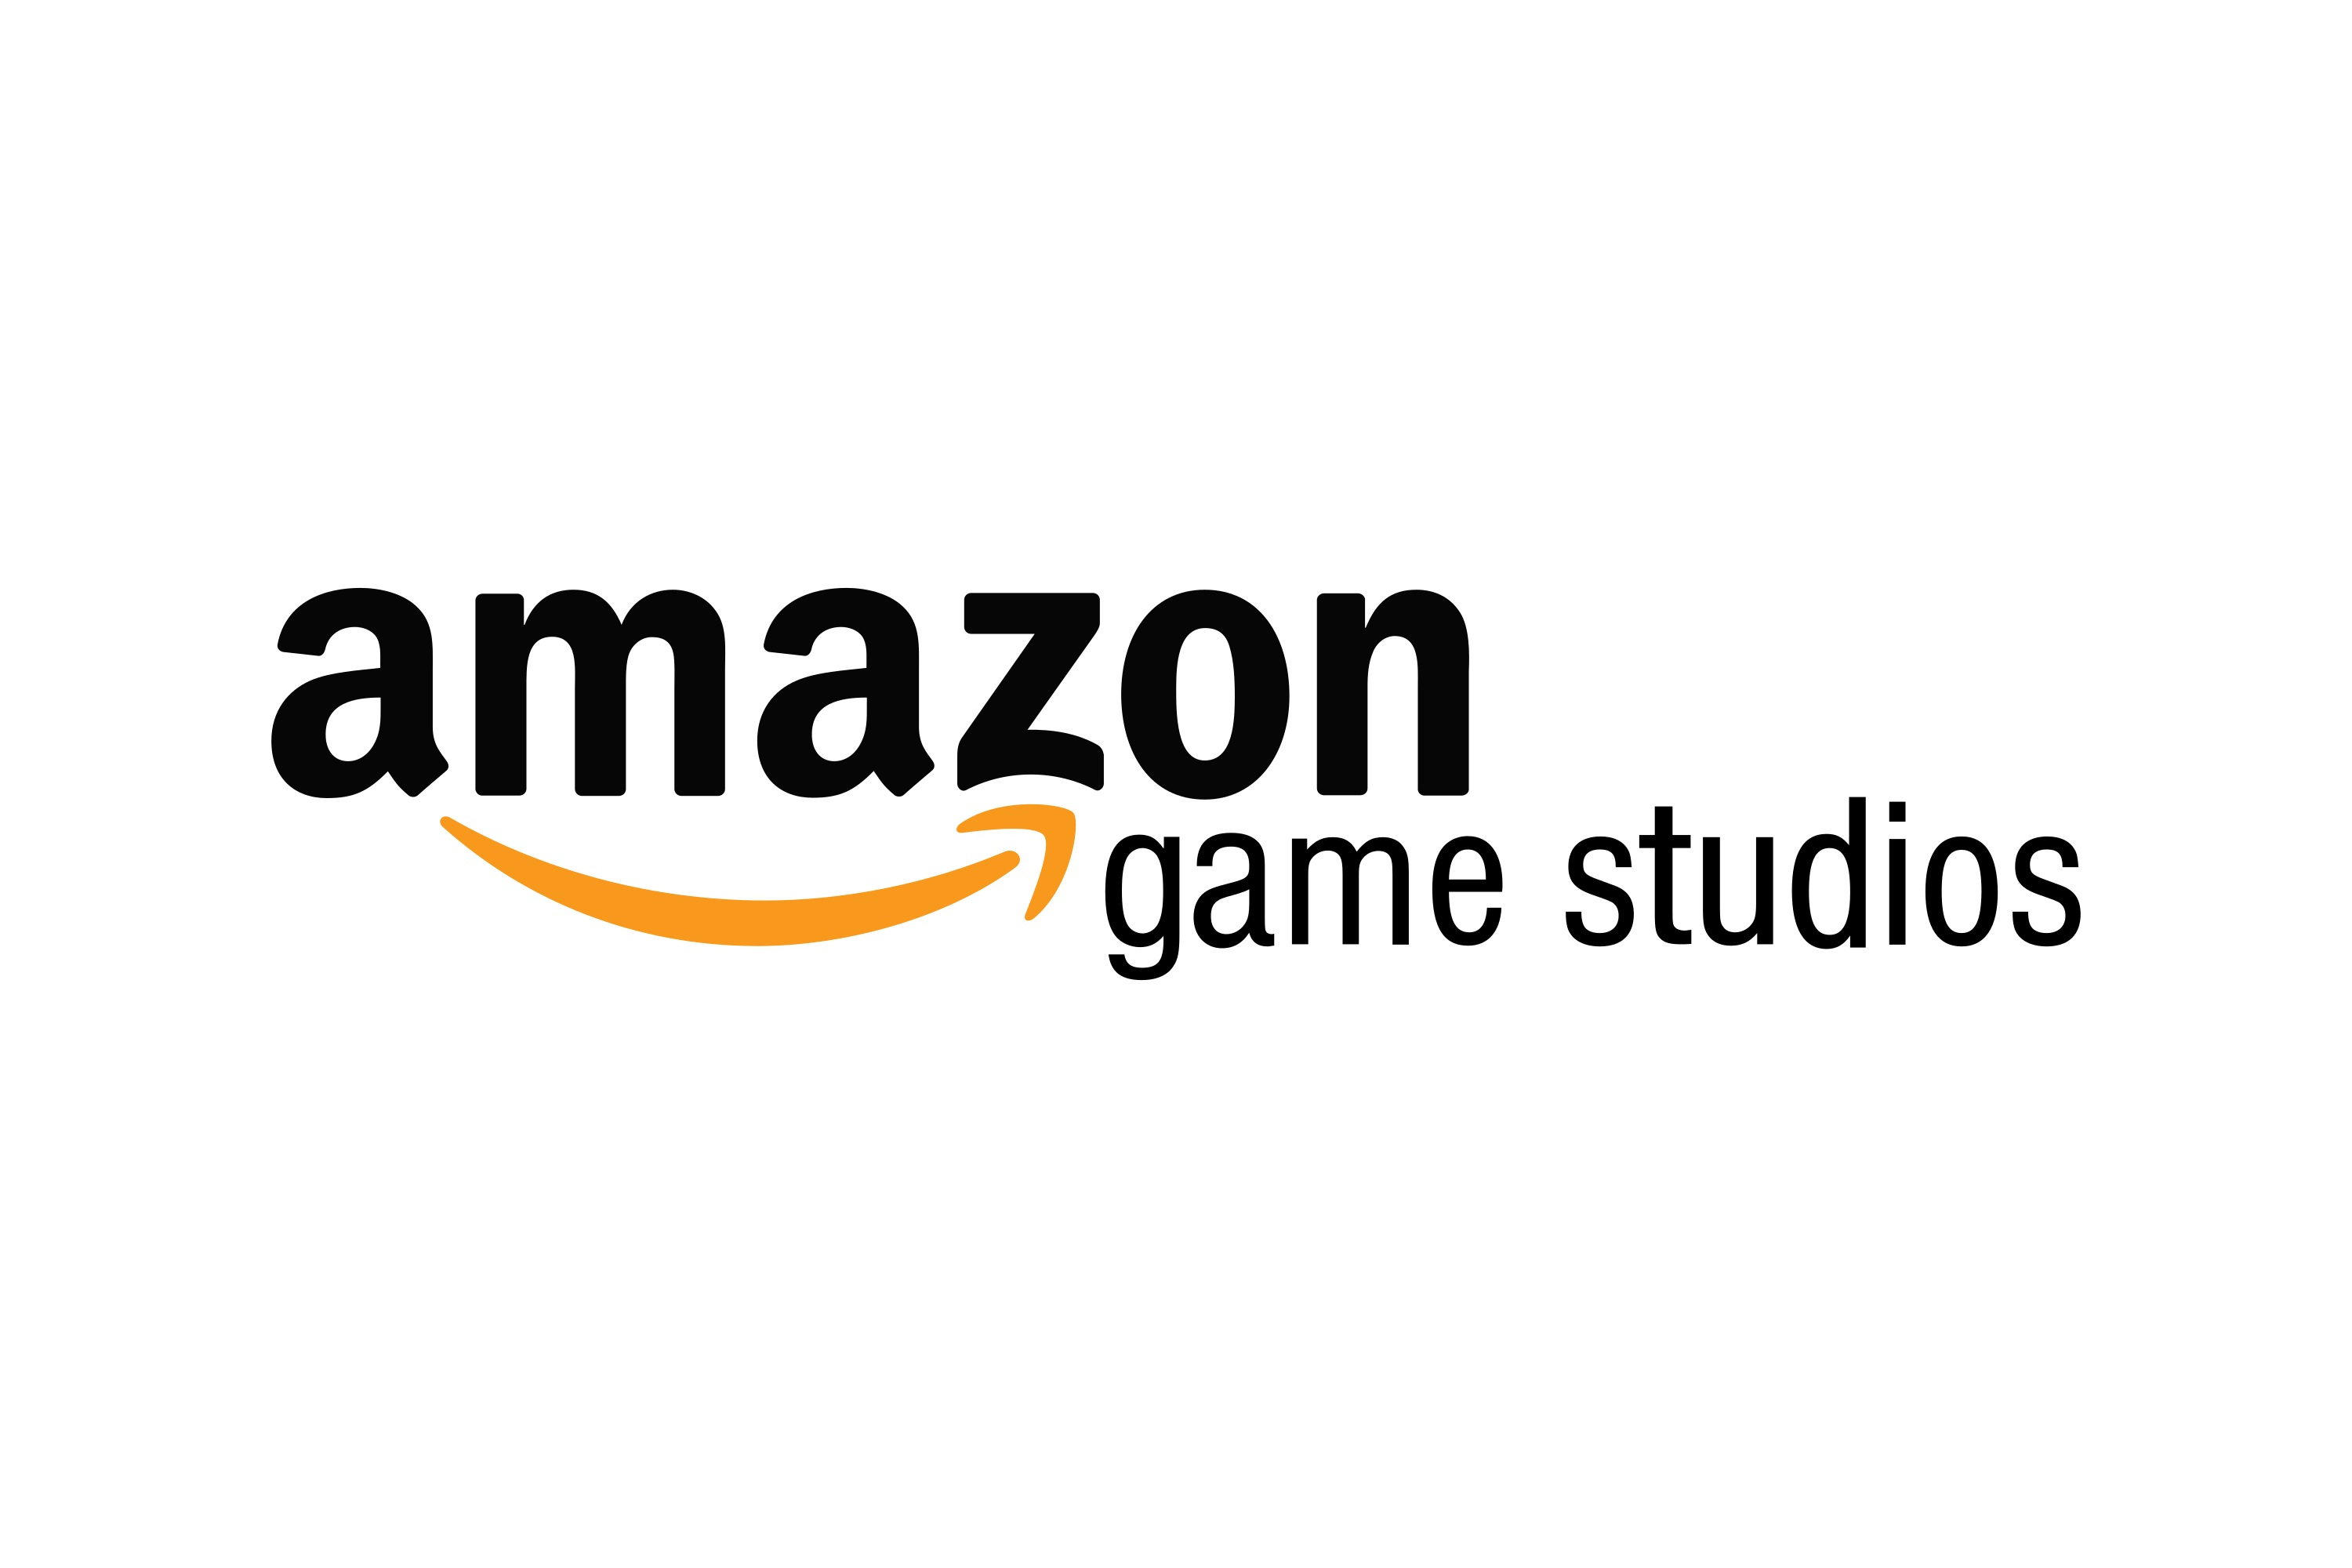 Amazon Game Studios: Employees can now retain rights to their own games